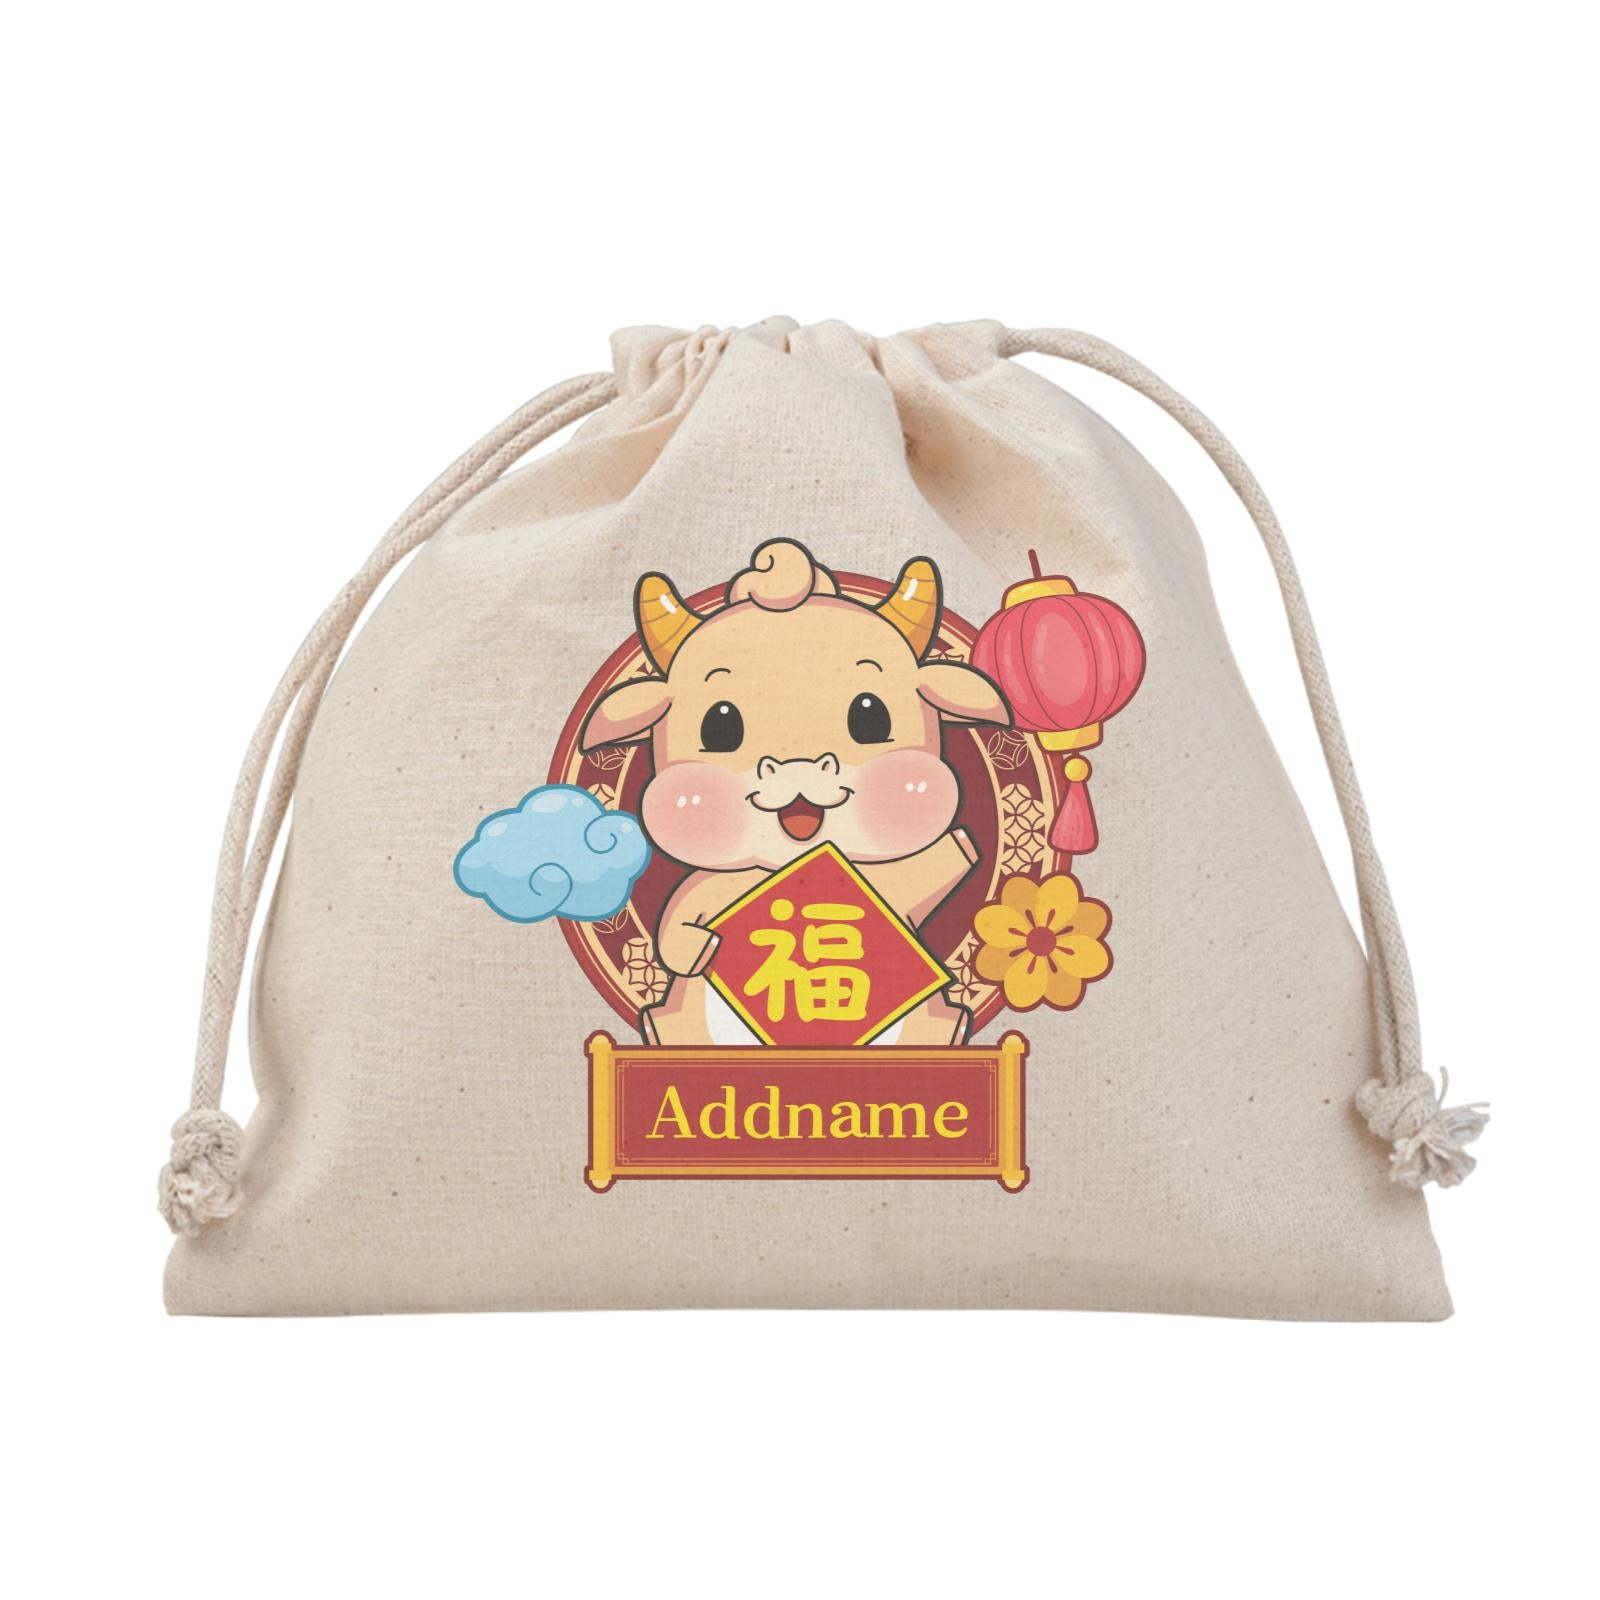 [CNY 2021] Golden Cow with Spring Couplets Satchel